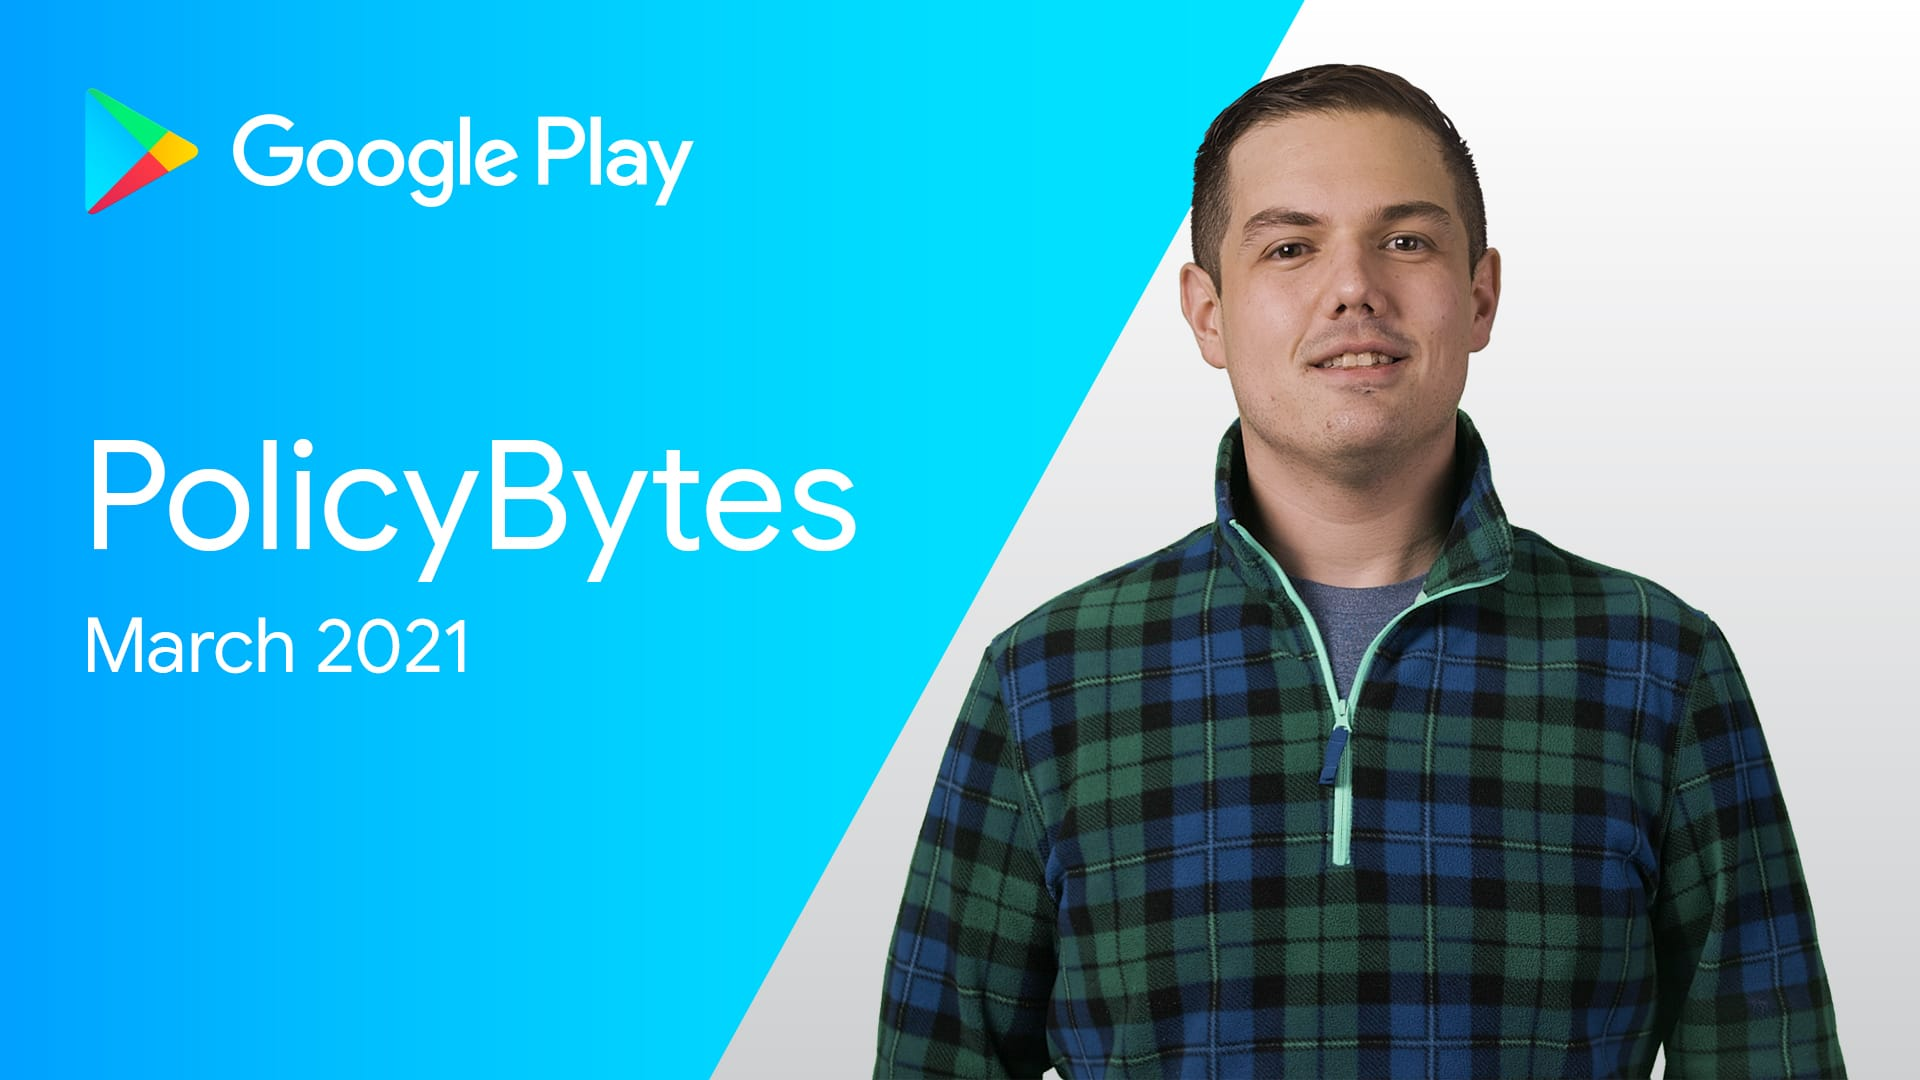 Google Play PolicyBytes - March 2021 Update image